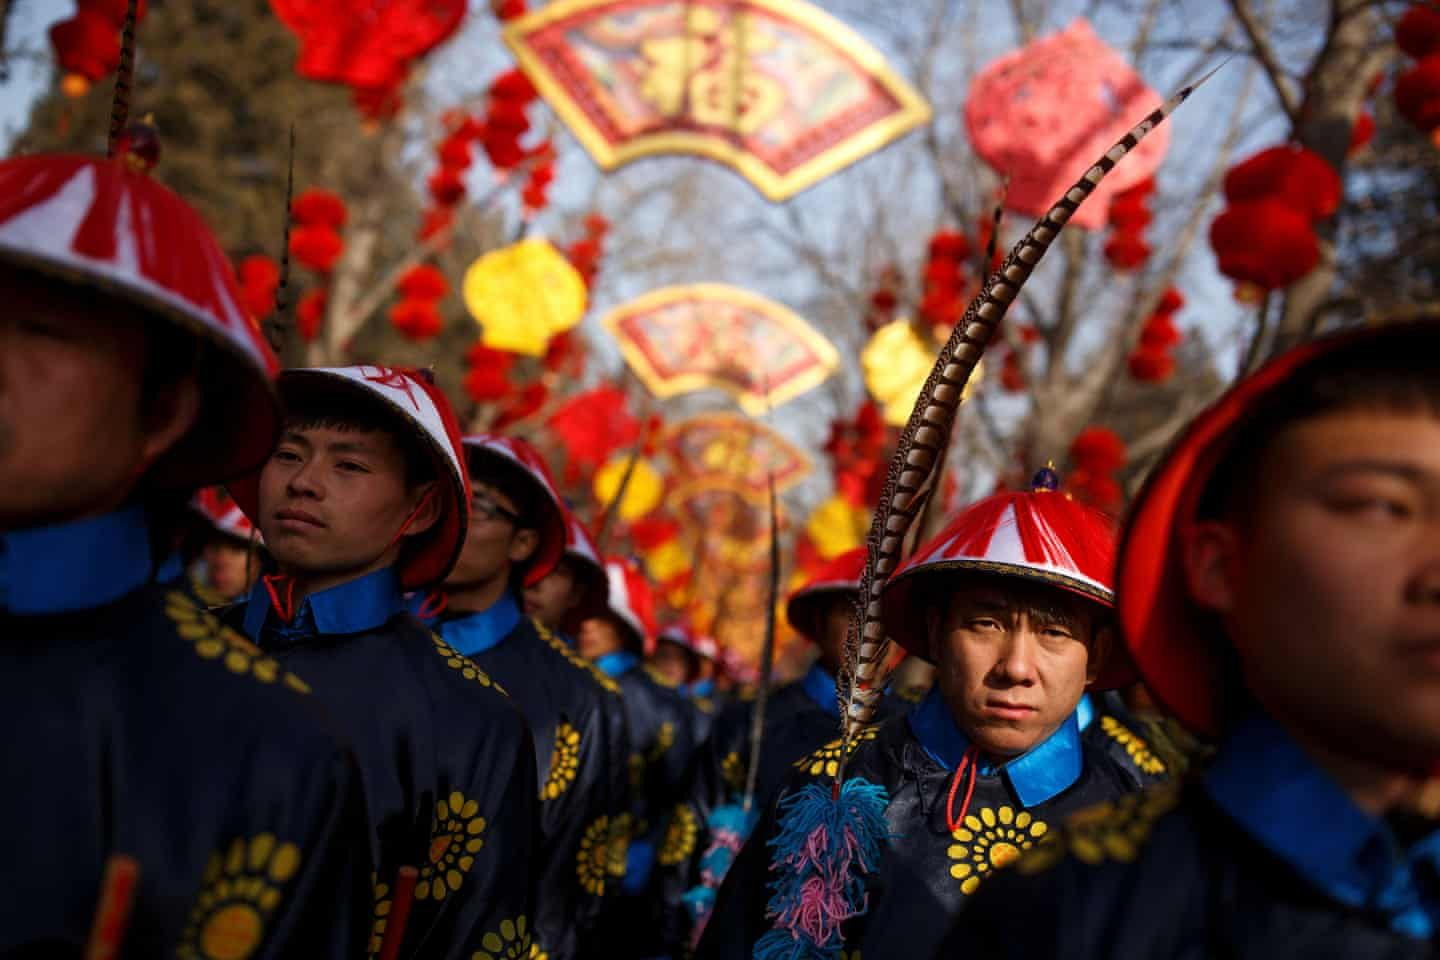 Chinese lunar new year 2019 in pictures Lunar new